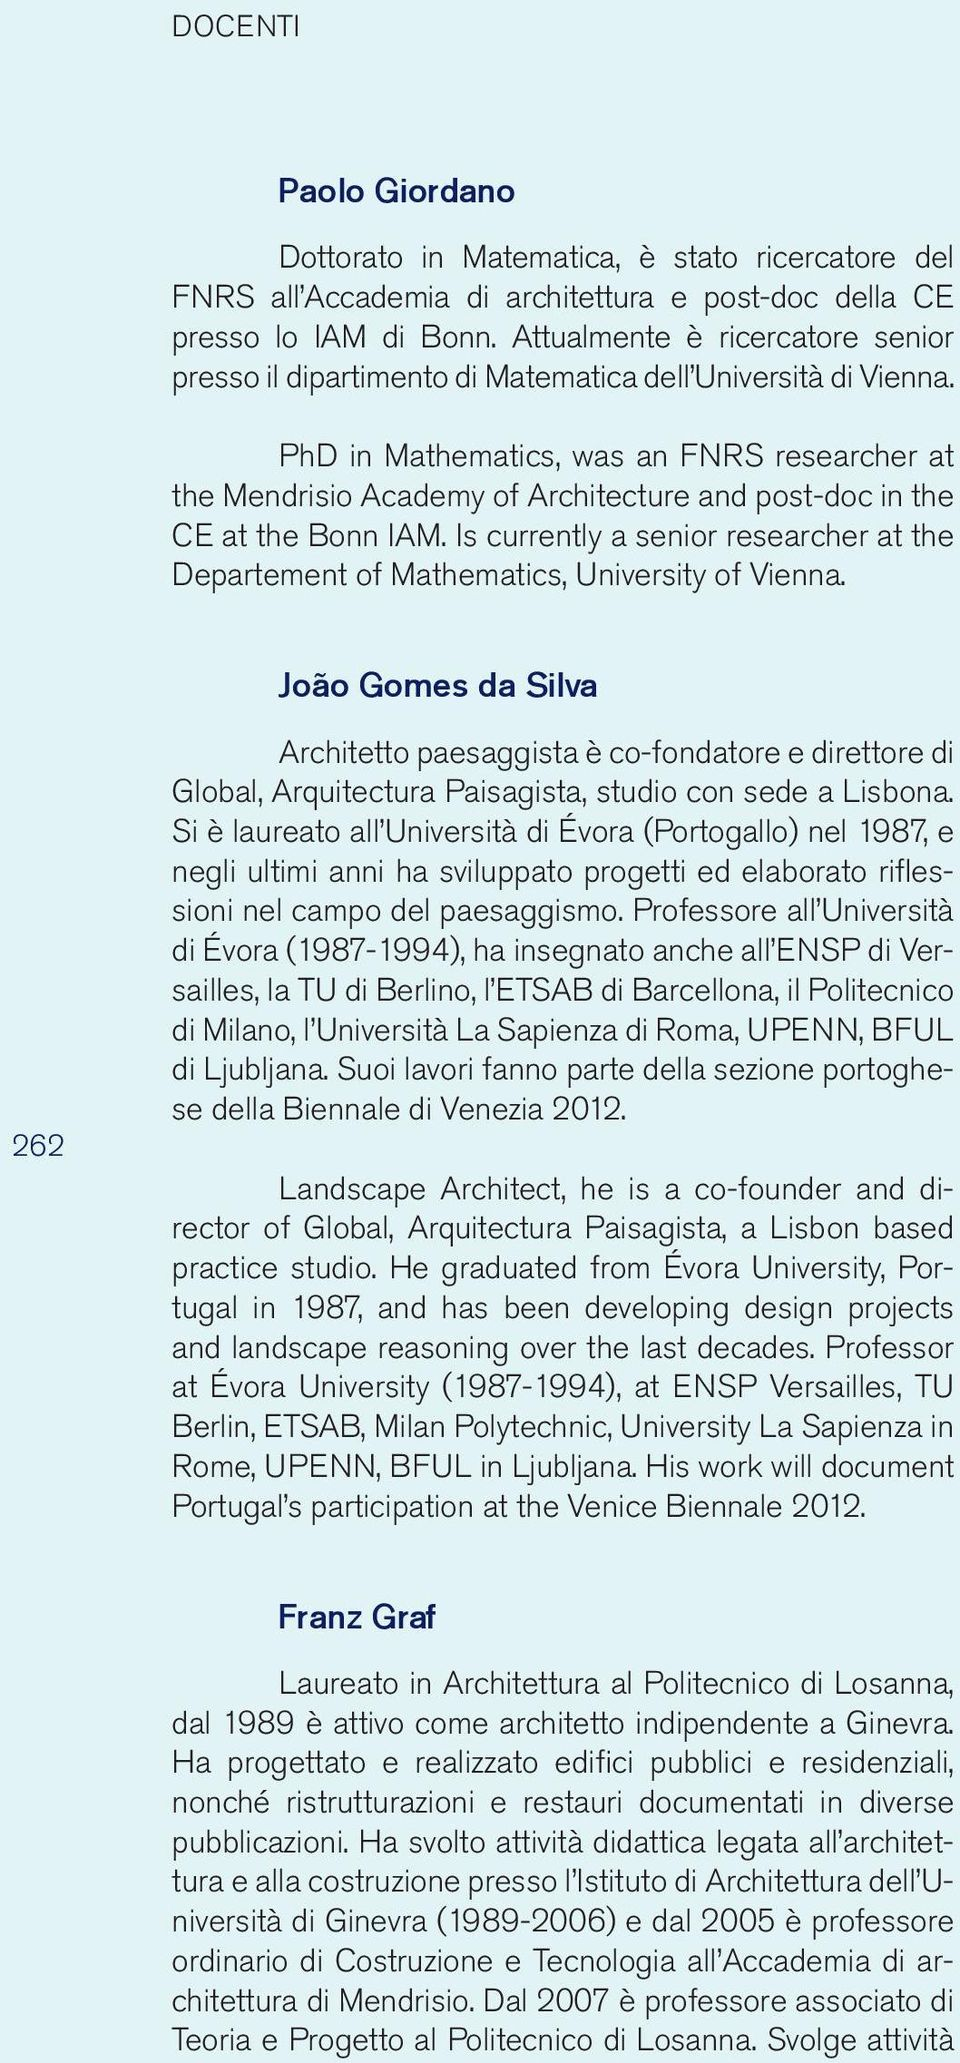 PhD in Mathematics, was an FNRS researcher at the Mendrisio Academy of Architecture and post-doc in the CE at the Bonn IAM.